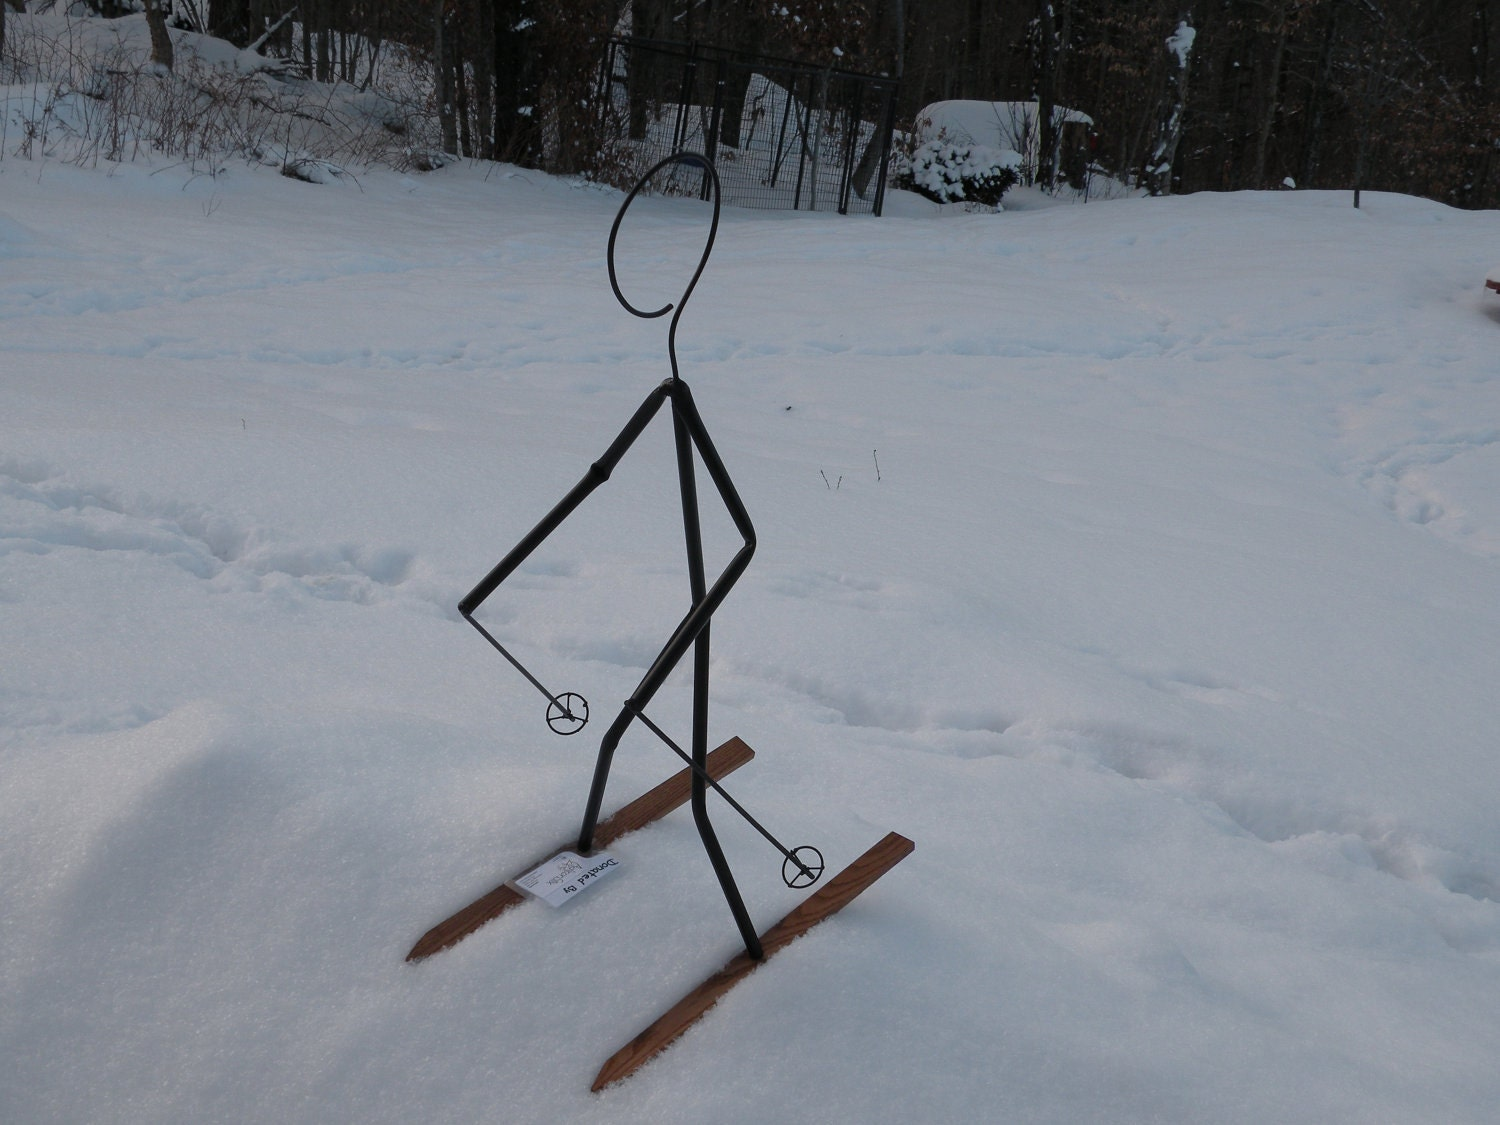 Tall skier lawn decoration yard unique ornament for snow for Unique yard decorations